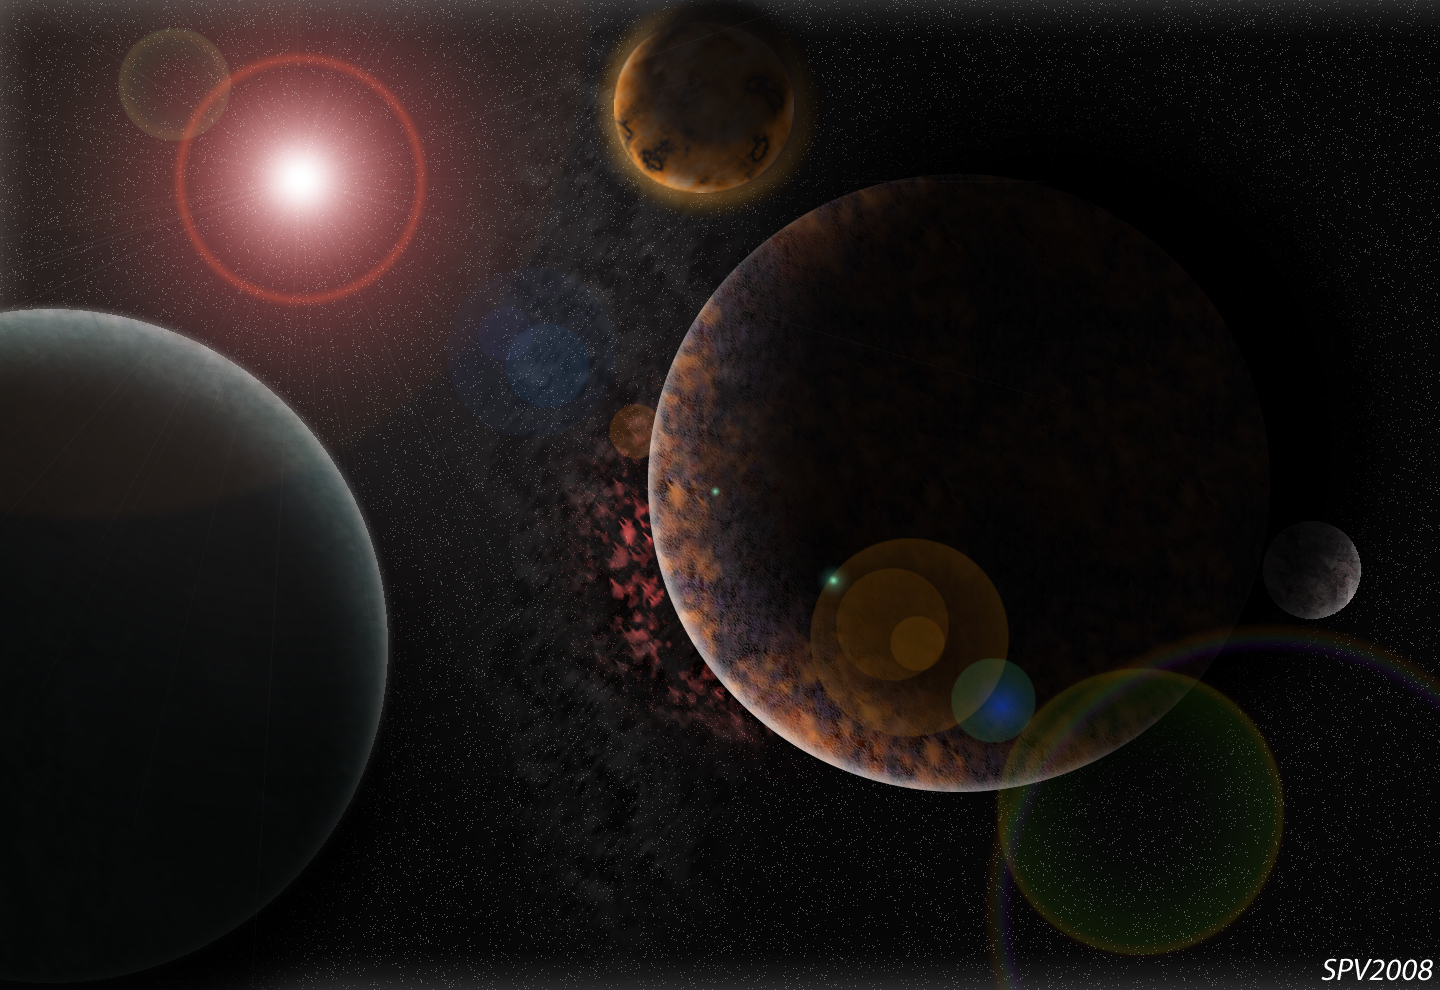 planets in the solar system wallpaper - photo #18